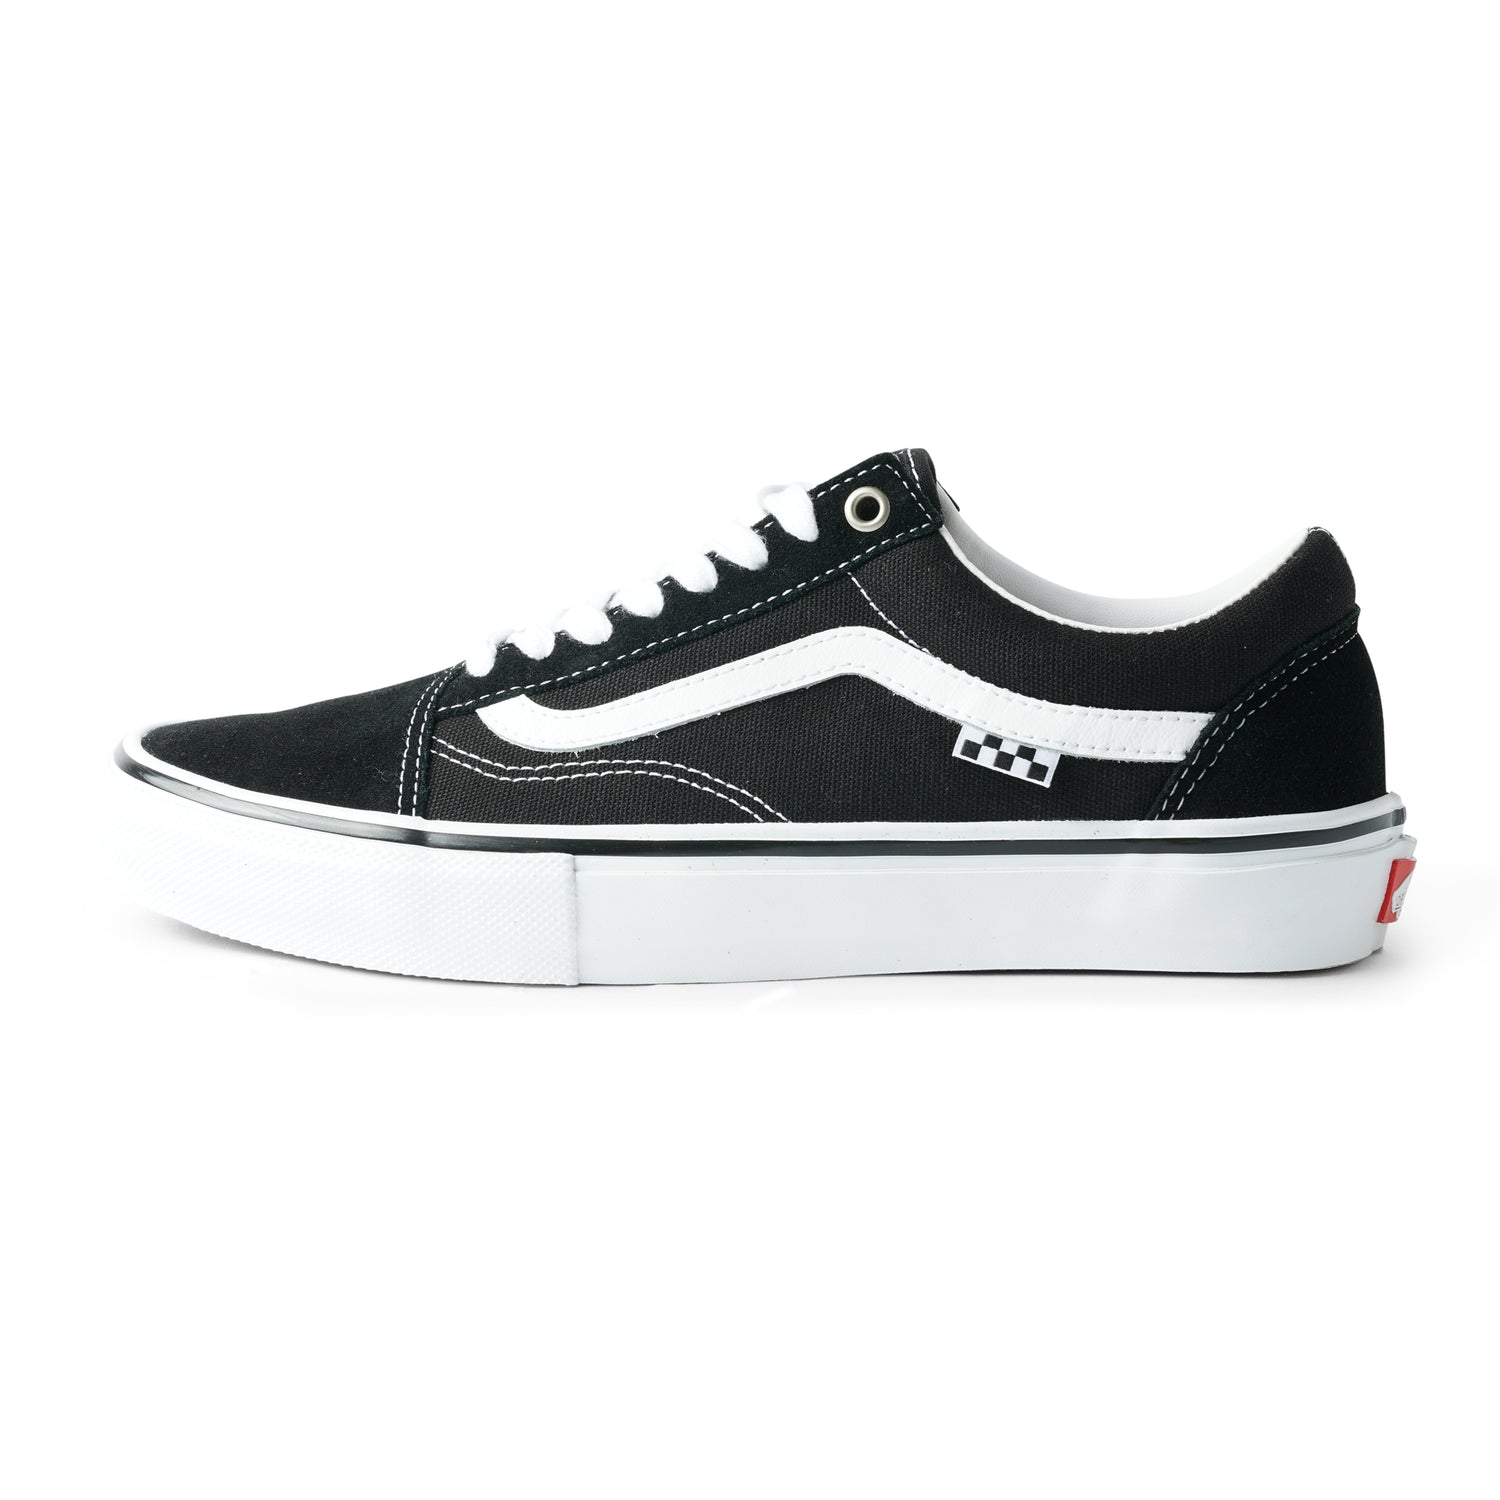 Skate Old Skool, Black / White